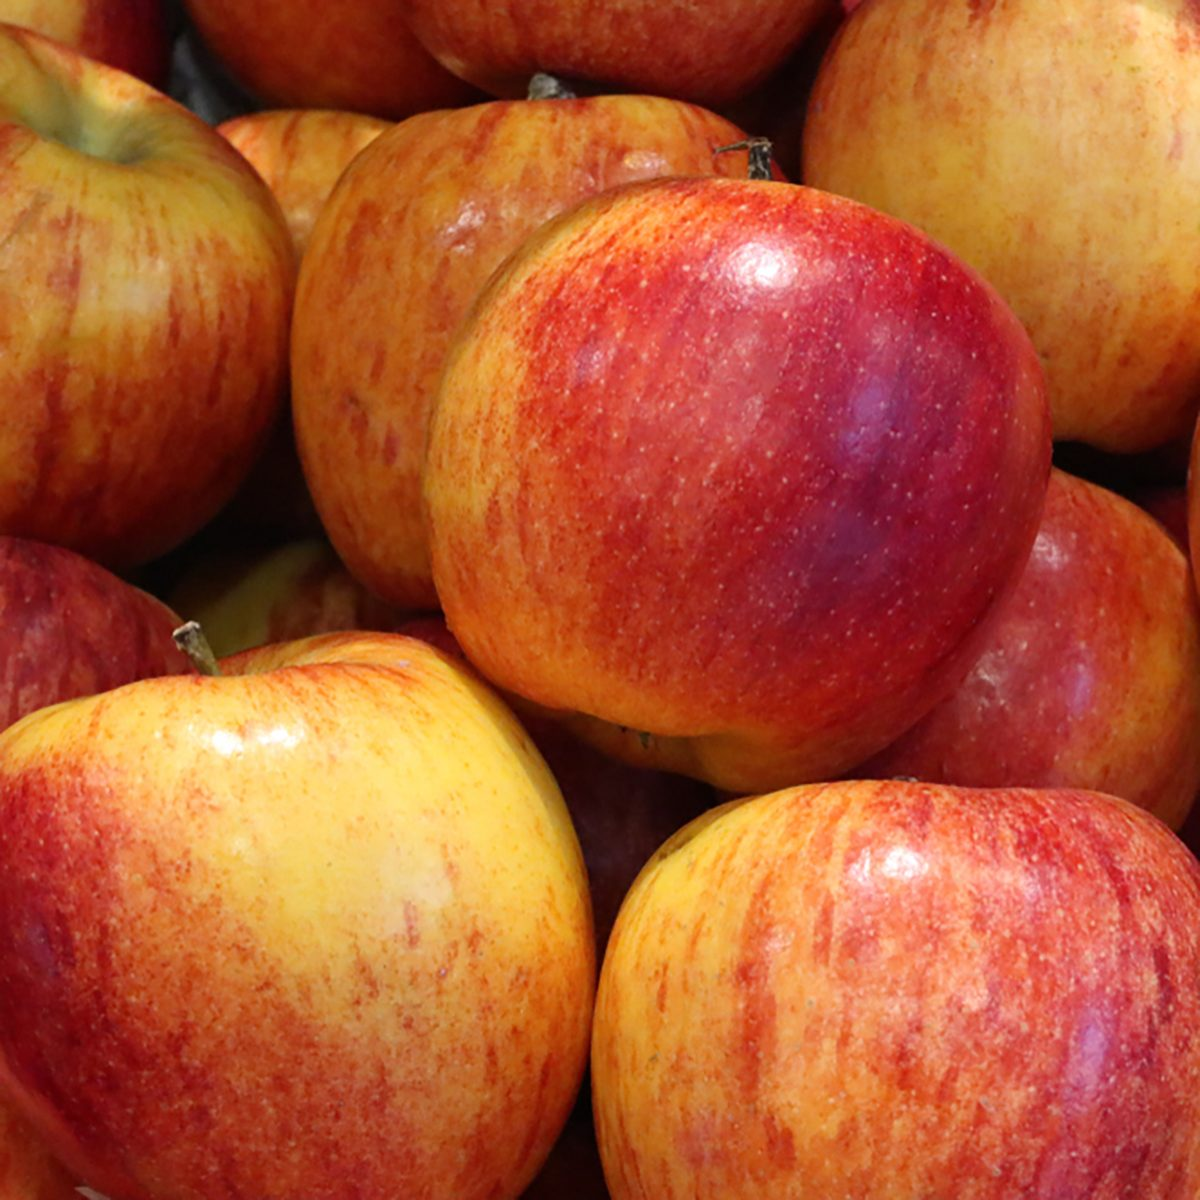 15 New Types of Apples You Should Be Buying | Taste of Home